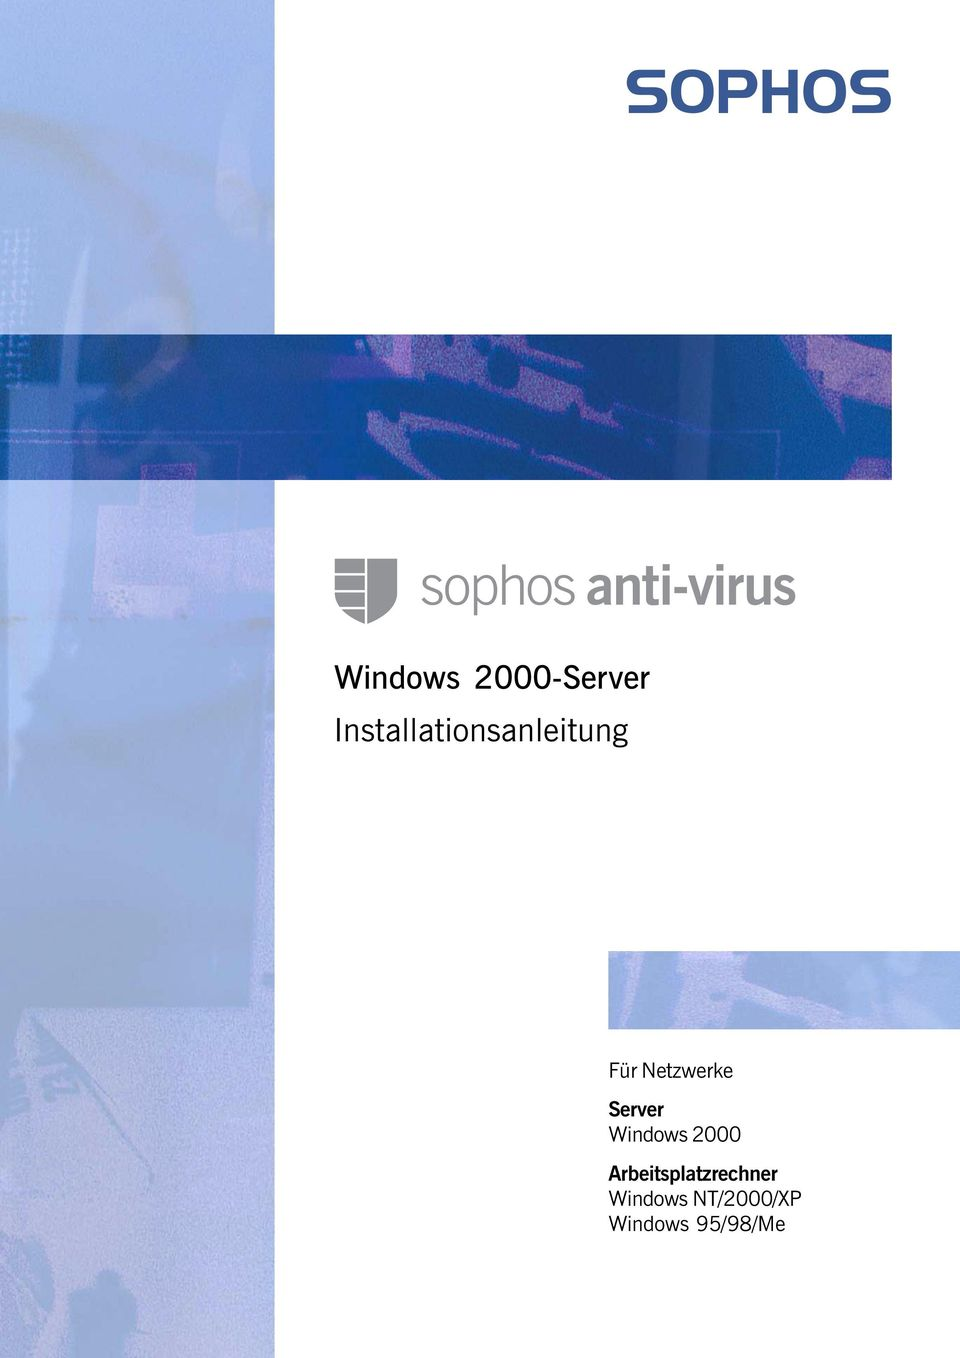 Netzwerke Server Windows 2000